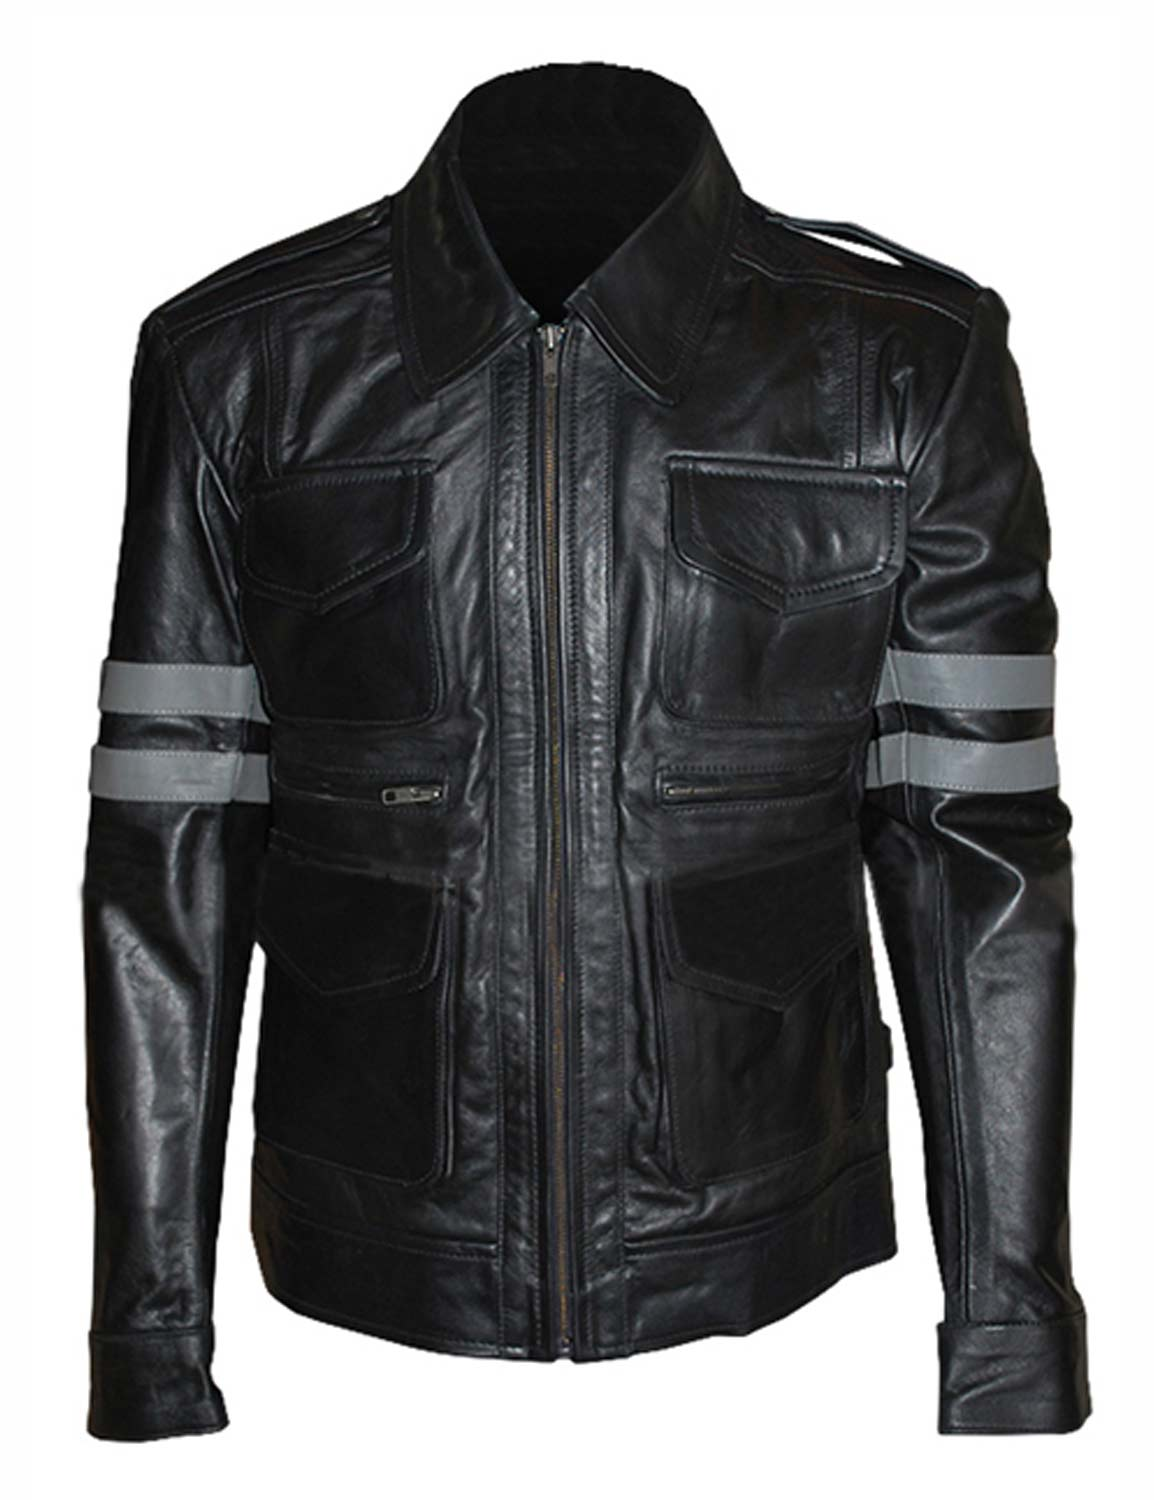 Leon Kennedy Jacket From Resident Evil 6 Hjackets